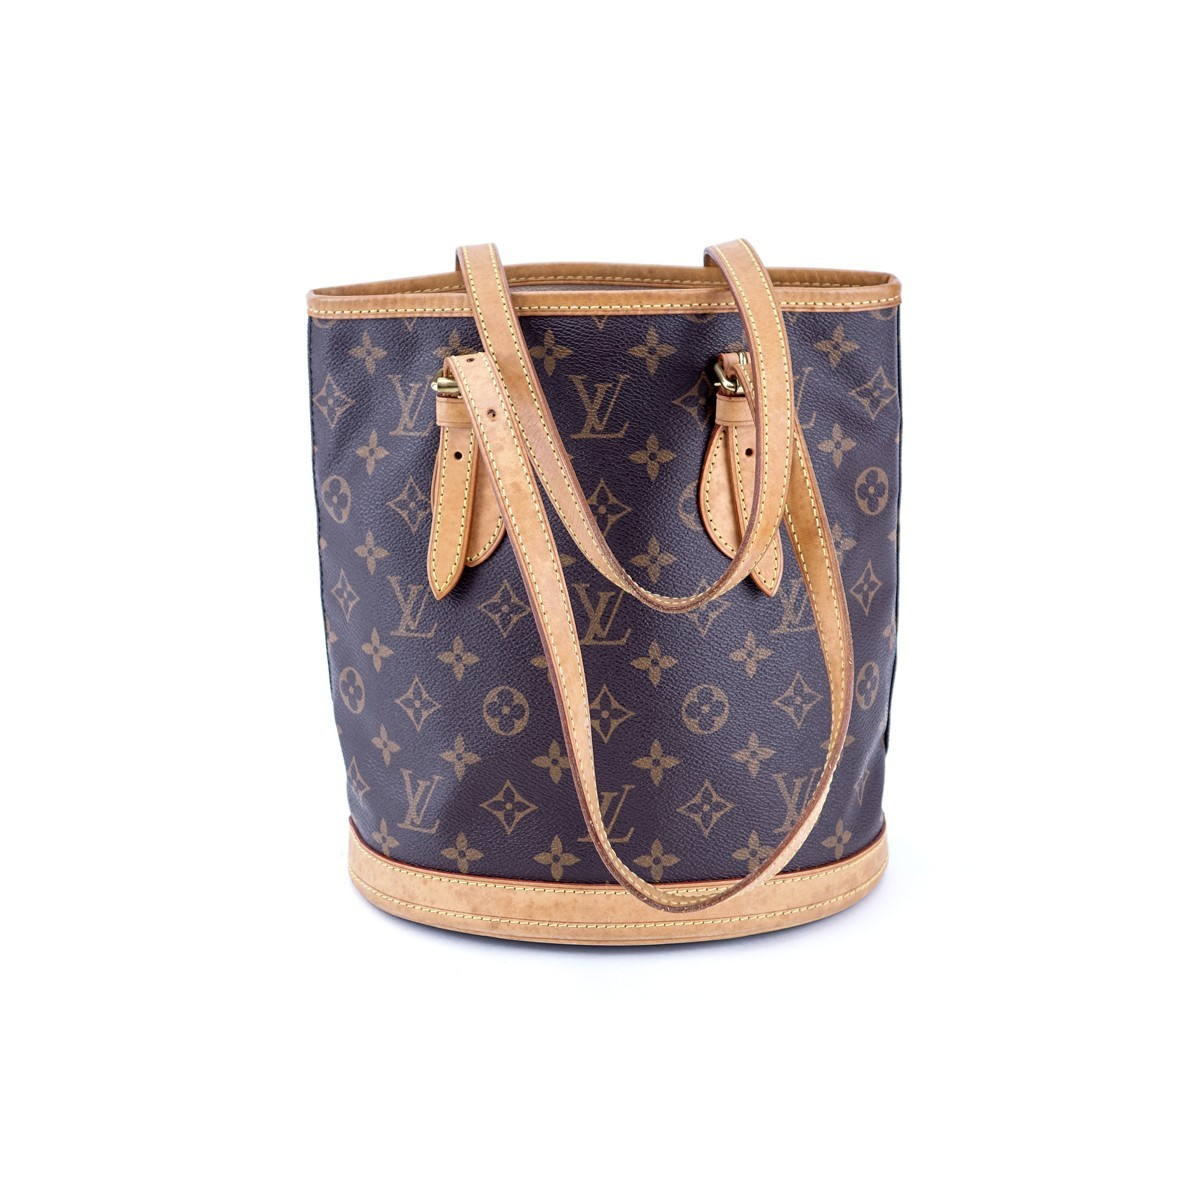 Louis Vuitton Brown Monogram Coated Canvas Bucket PM Bag. Golden brass hardware, beige leather interior with zipper and slot pockets, vachetta straps.